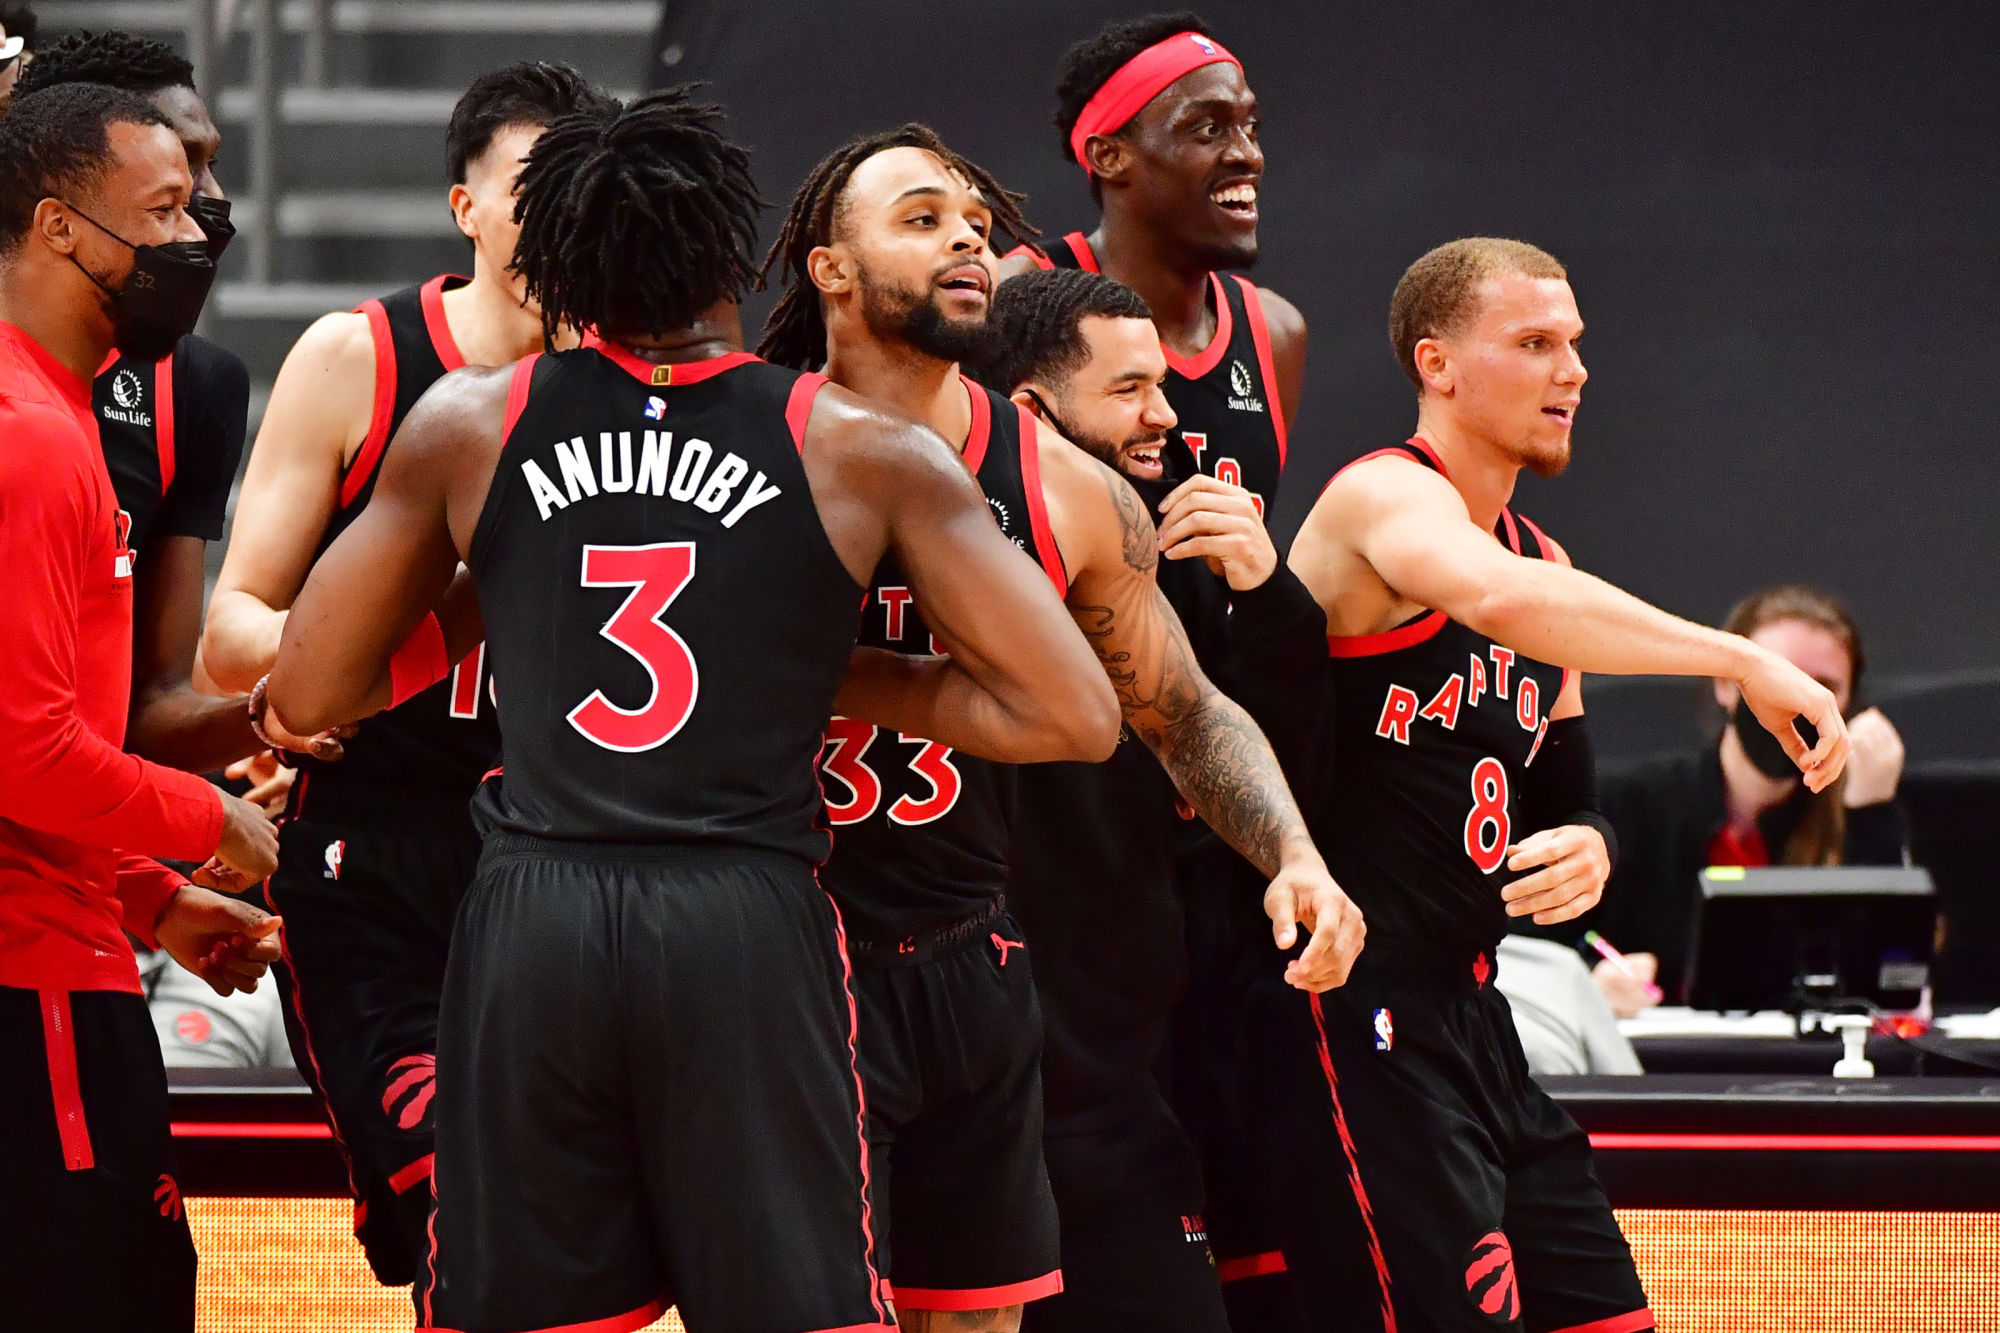 Toronto Raptors: Now would be the most painless time to tank